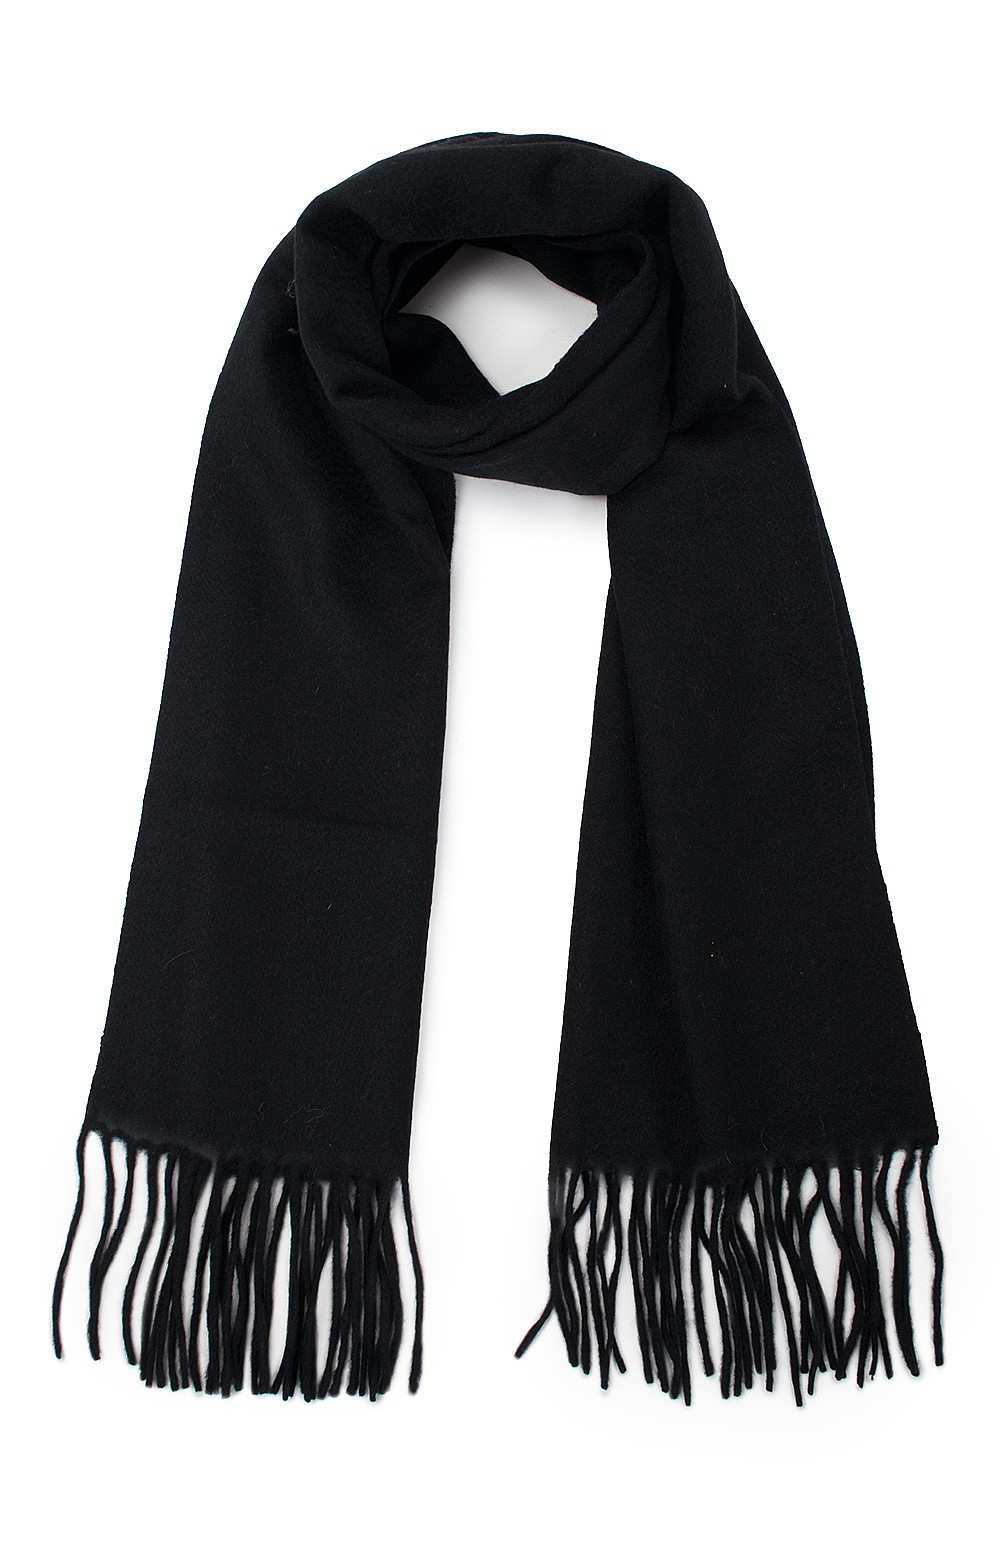 57484f558 Cashmere Scarves - Men's Scarf Collection - House of Bruar